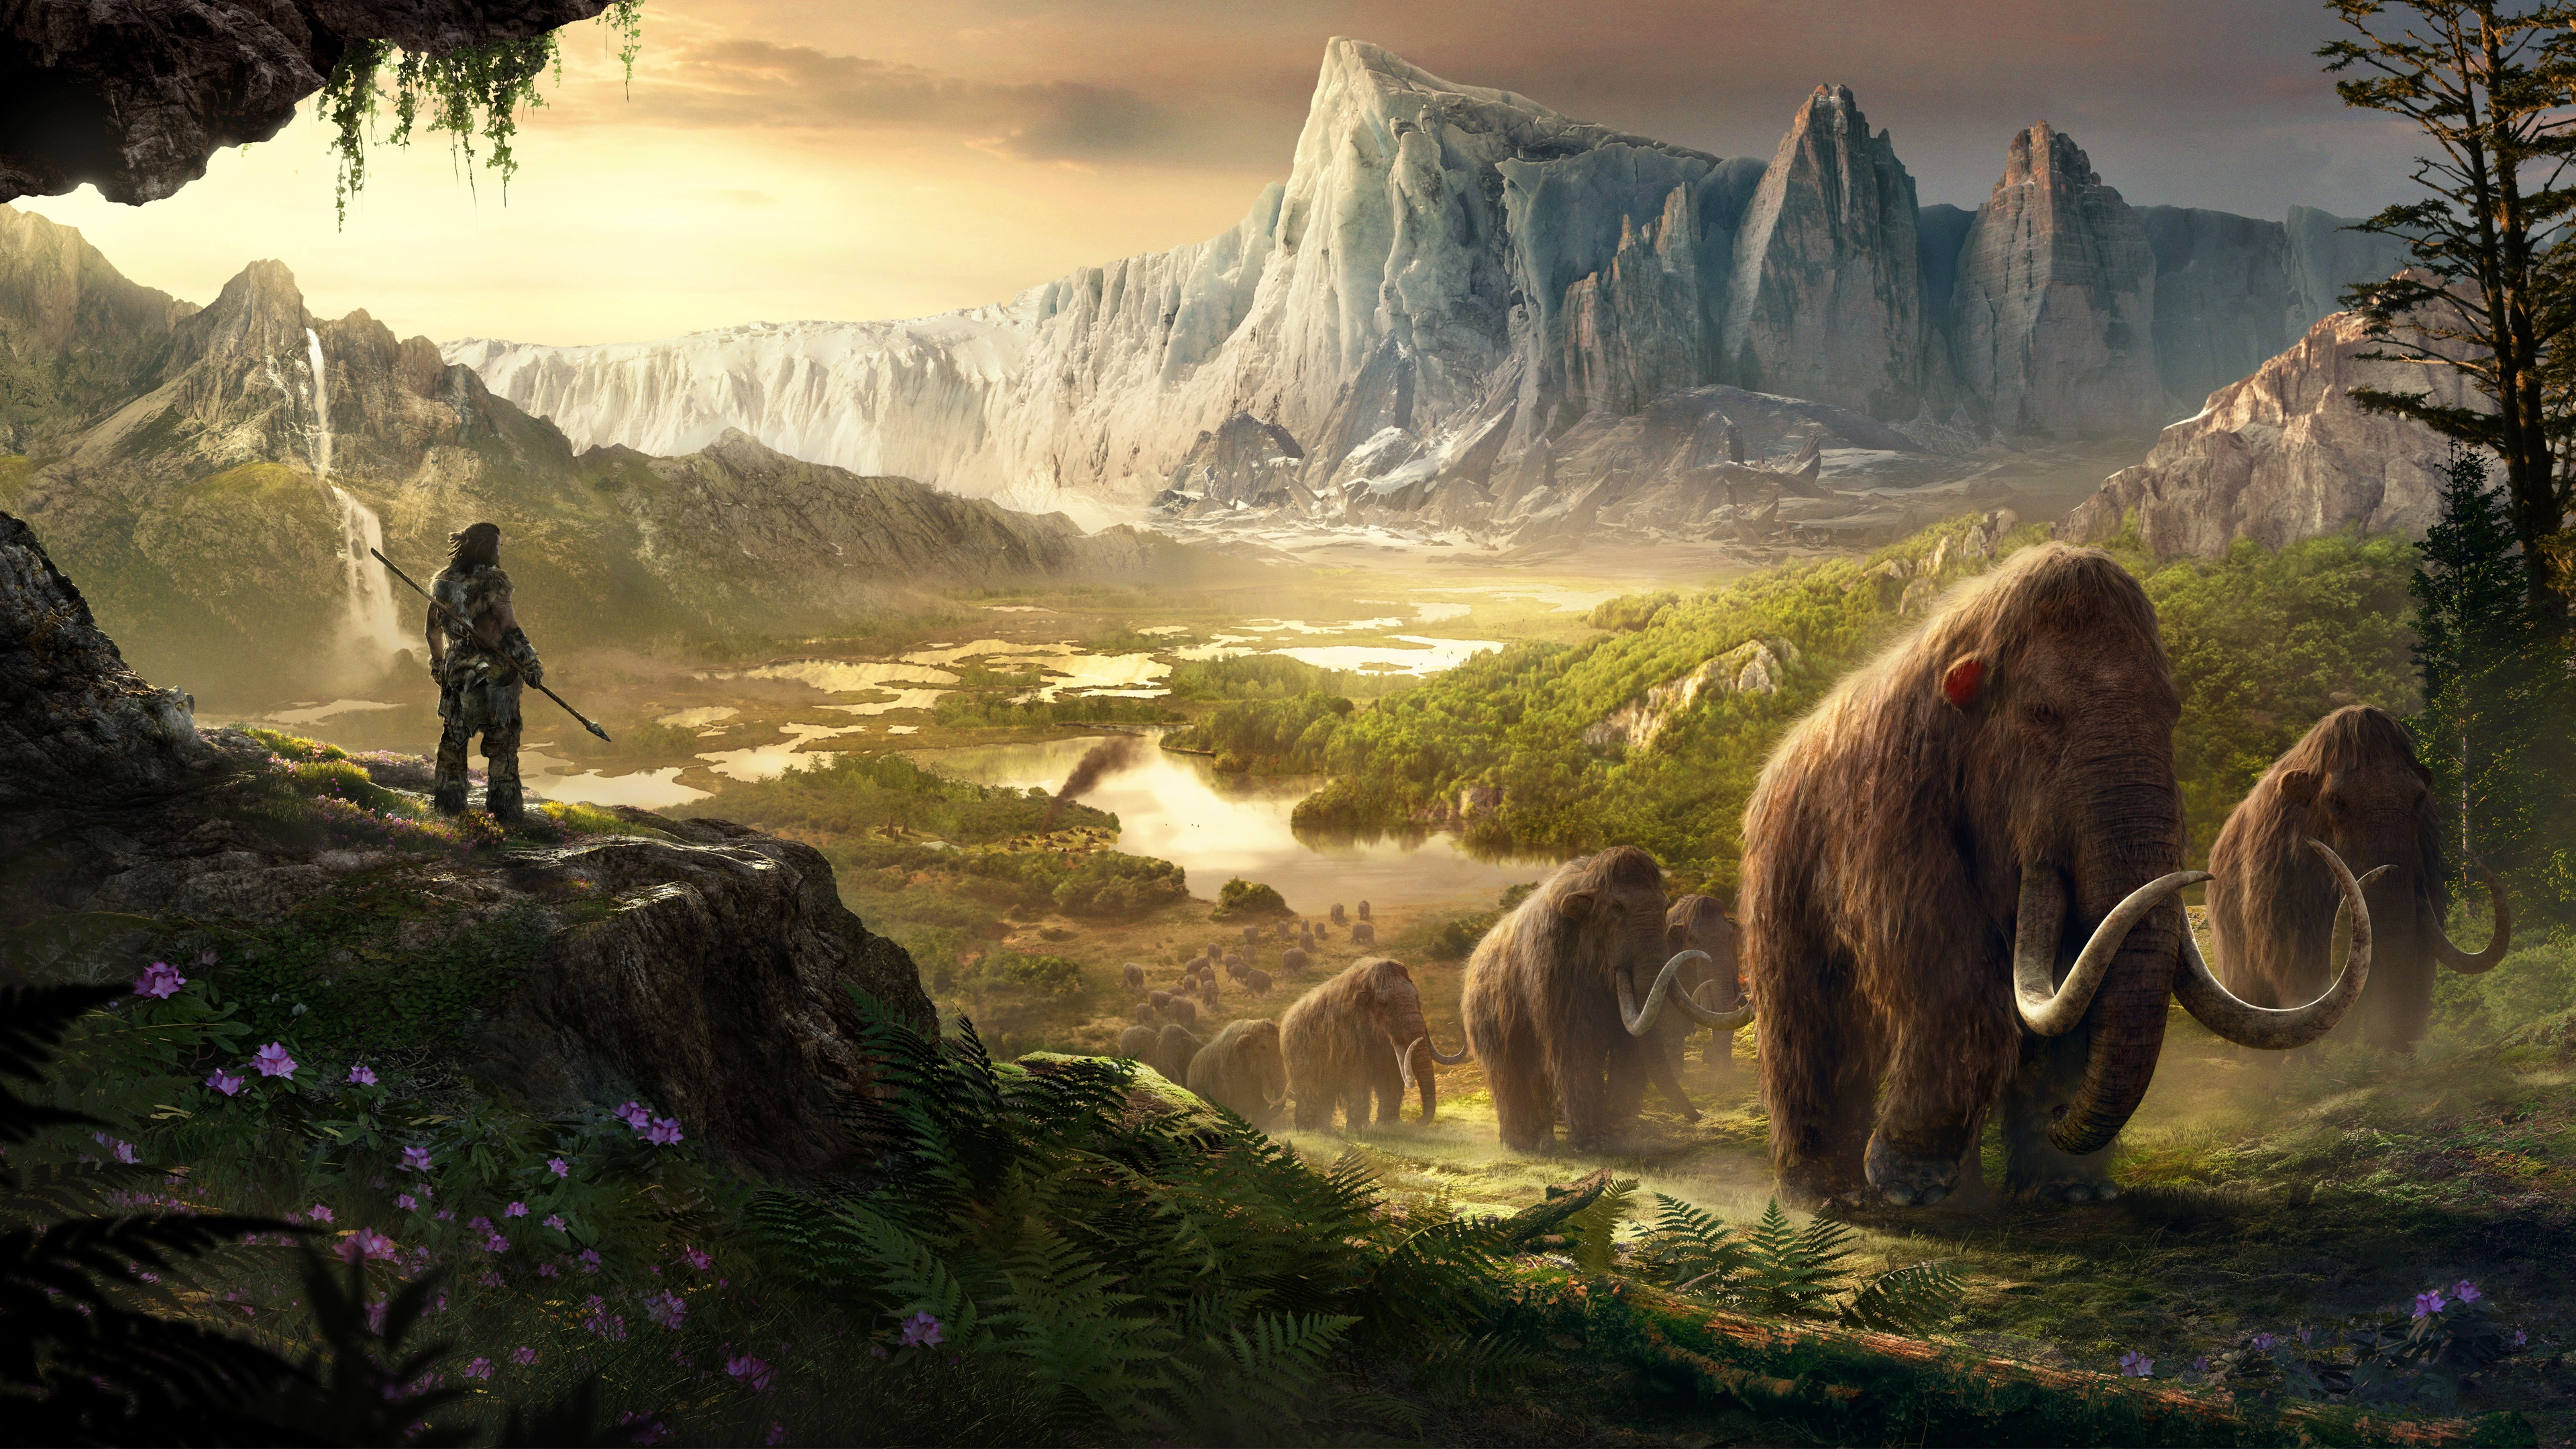 wallpaper.wiki-takkar-mammoths-in-far-cry-primal-4k-resolution